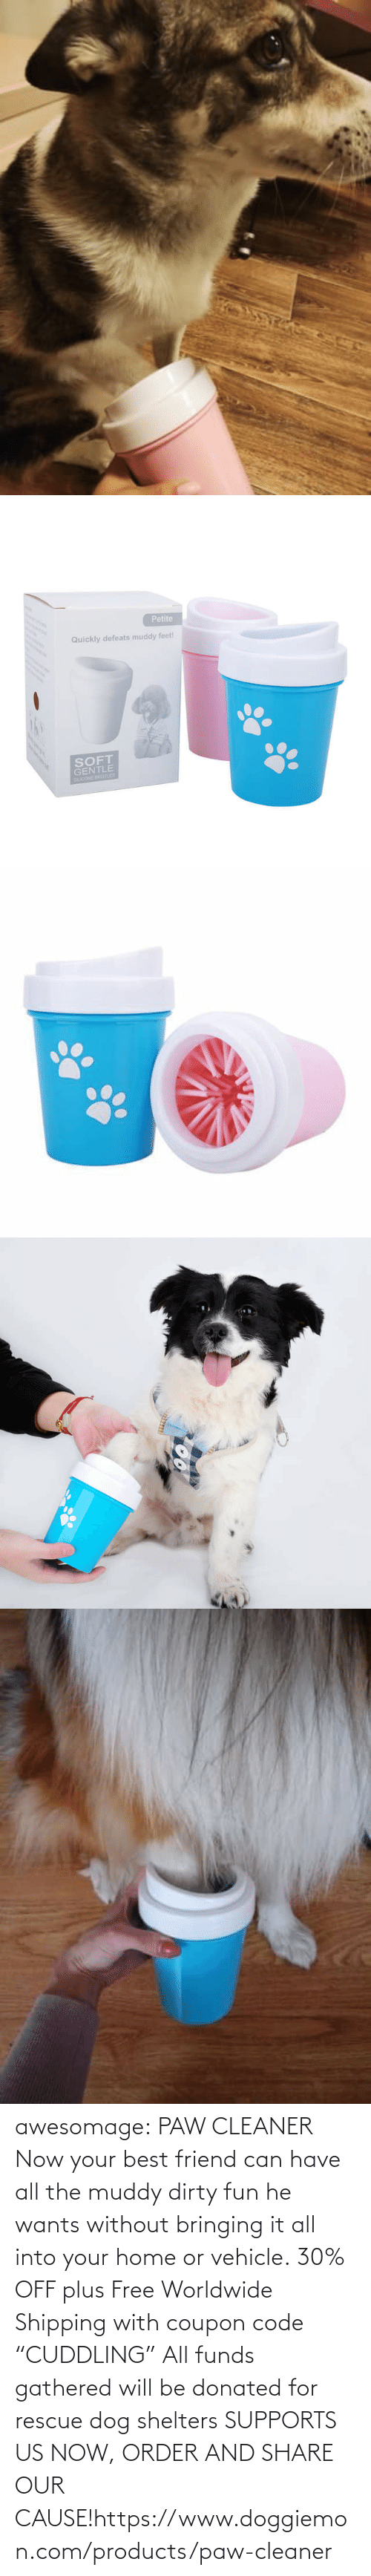 "best friend: awesomage:   PAW CLEANER     Now your best friend can have all the muddy dirty fun he wants without bringing it all into your home or vehicle.    30% OFF plus Free Worldwide Shipping with coupon code ""CUDDLING""    All funds gathered will be donated for rescue dog shelters    SUPPORTS US NOW, ORDER AND SHARE OUR CAUSE!https://www.doggiemon.com/products/paw-cleaner"